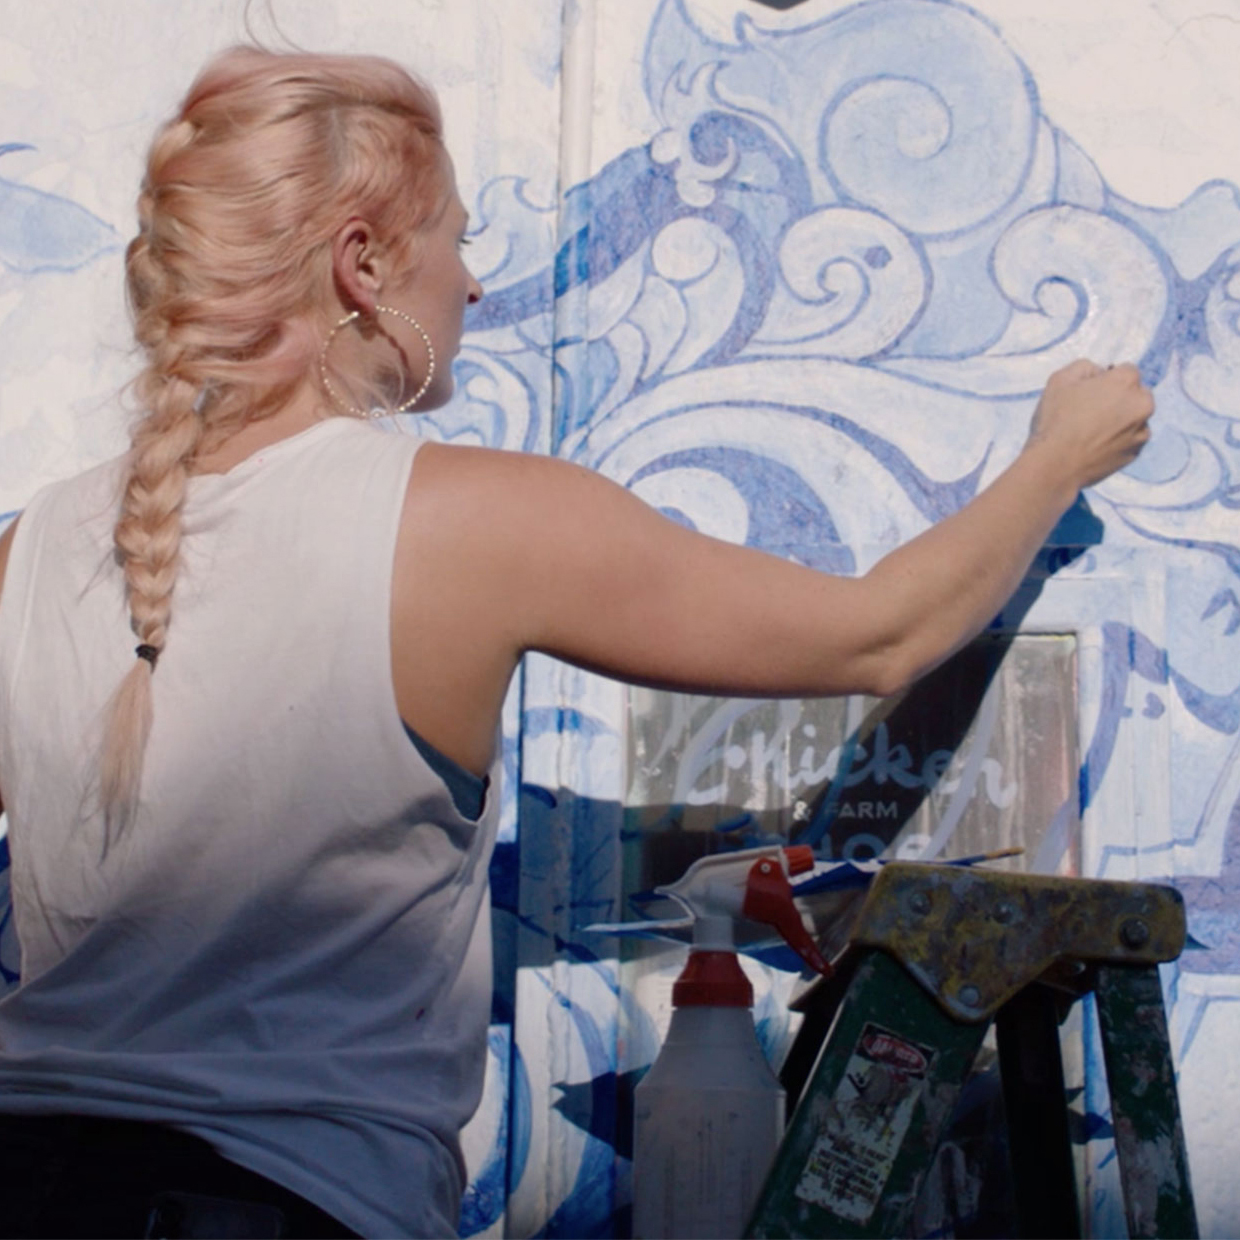 woman painting mural